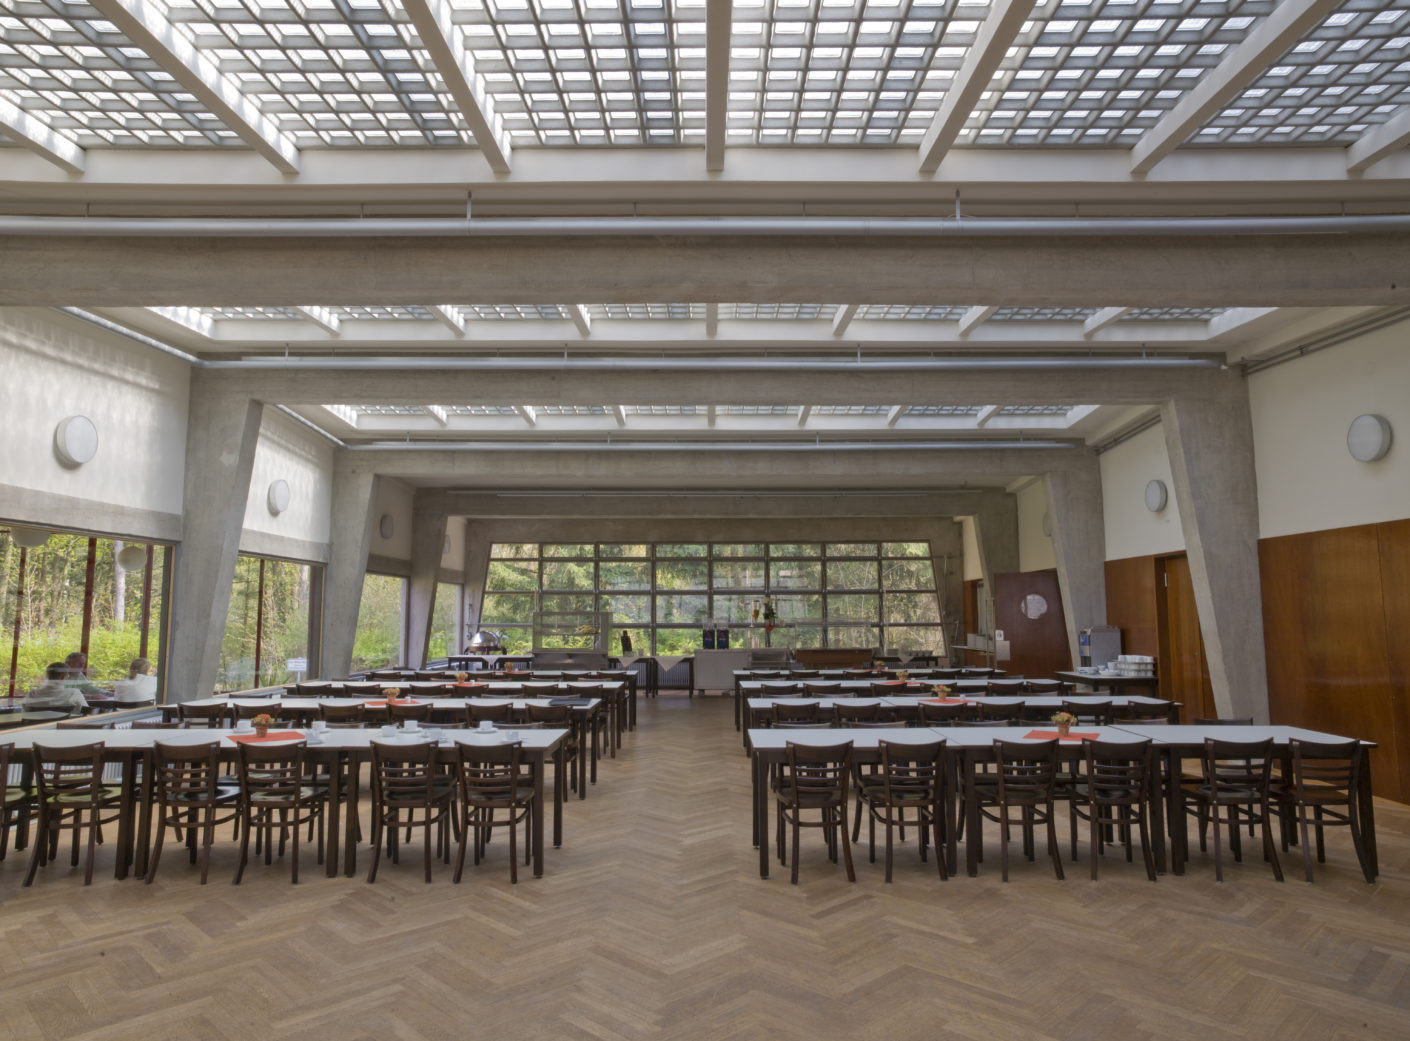 Bundesschule of the ADGB, Bernau, Hannes Meyer, dining hall, world cultural heritage